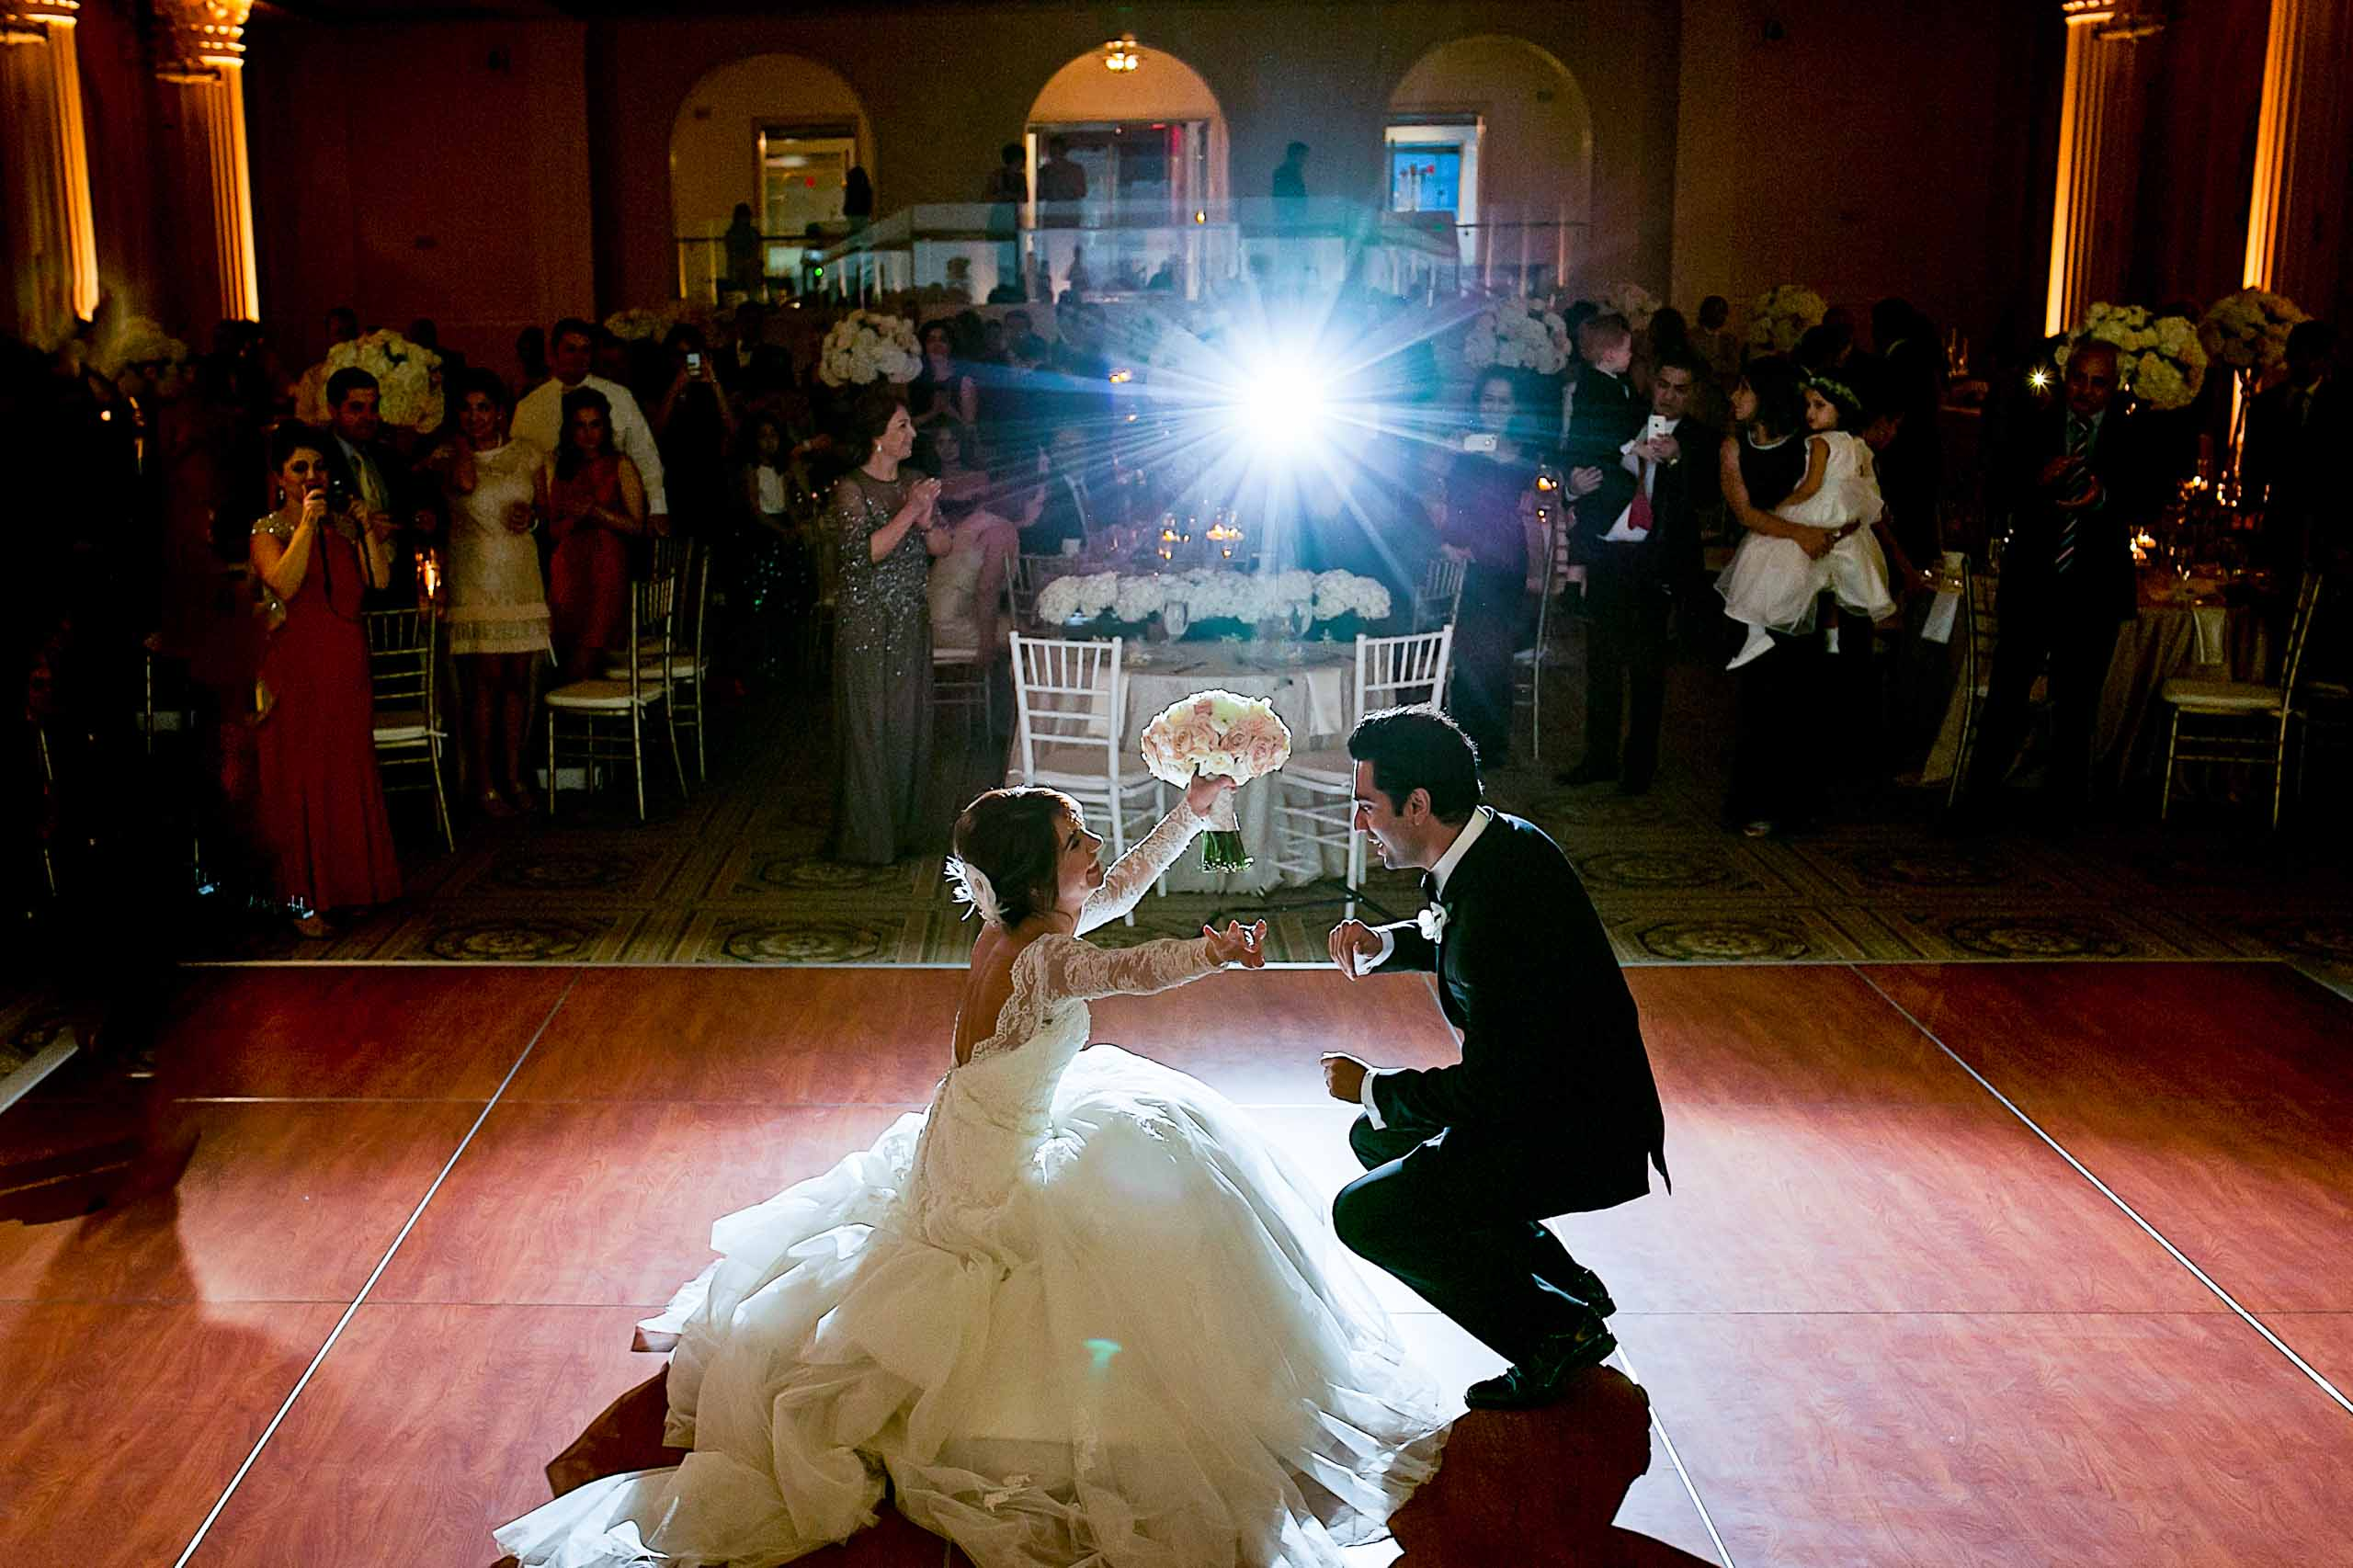 A first dance photo of a Persian bride dipping down low with the groom during their Portland Persian wedding at the Portland Art Museum reception